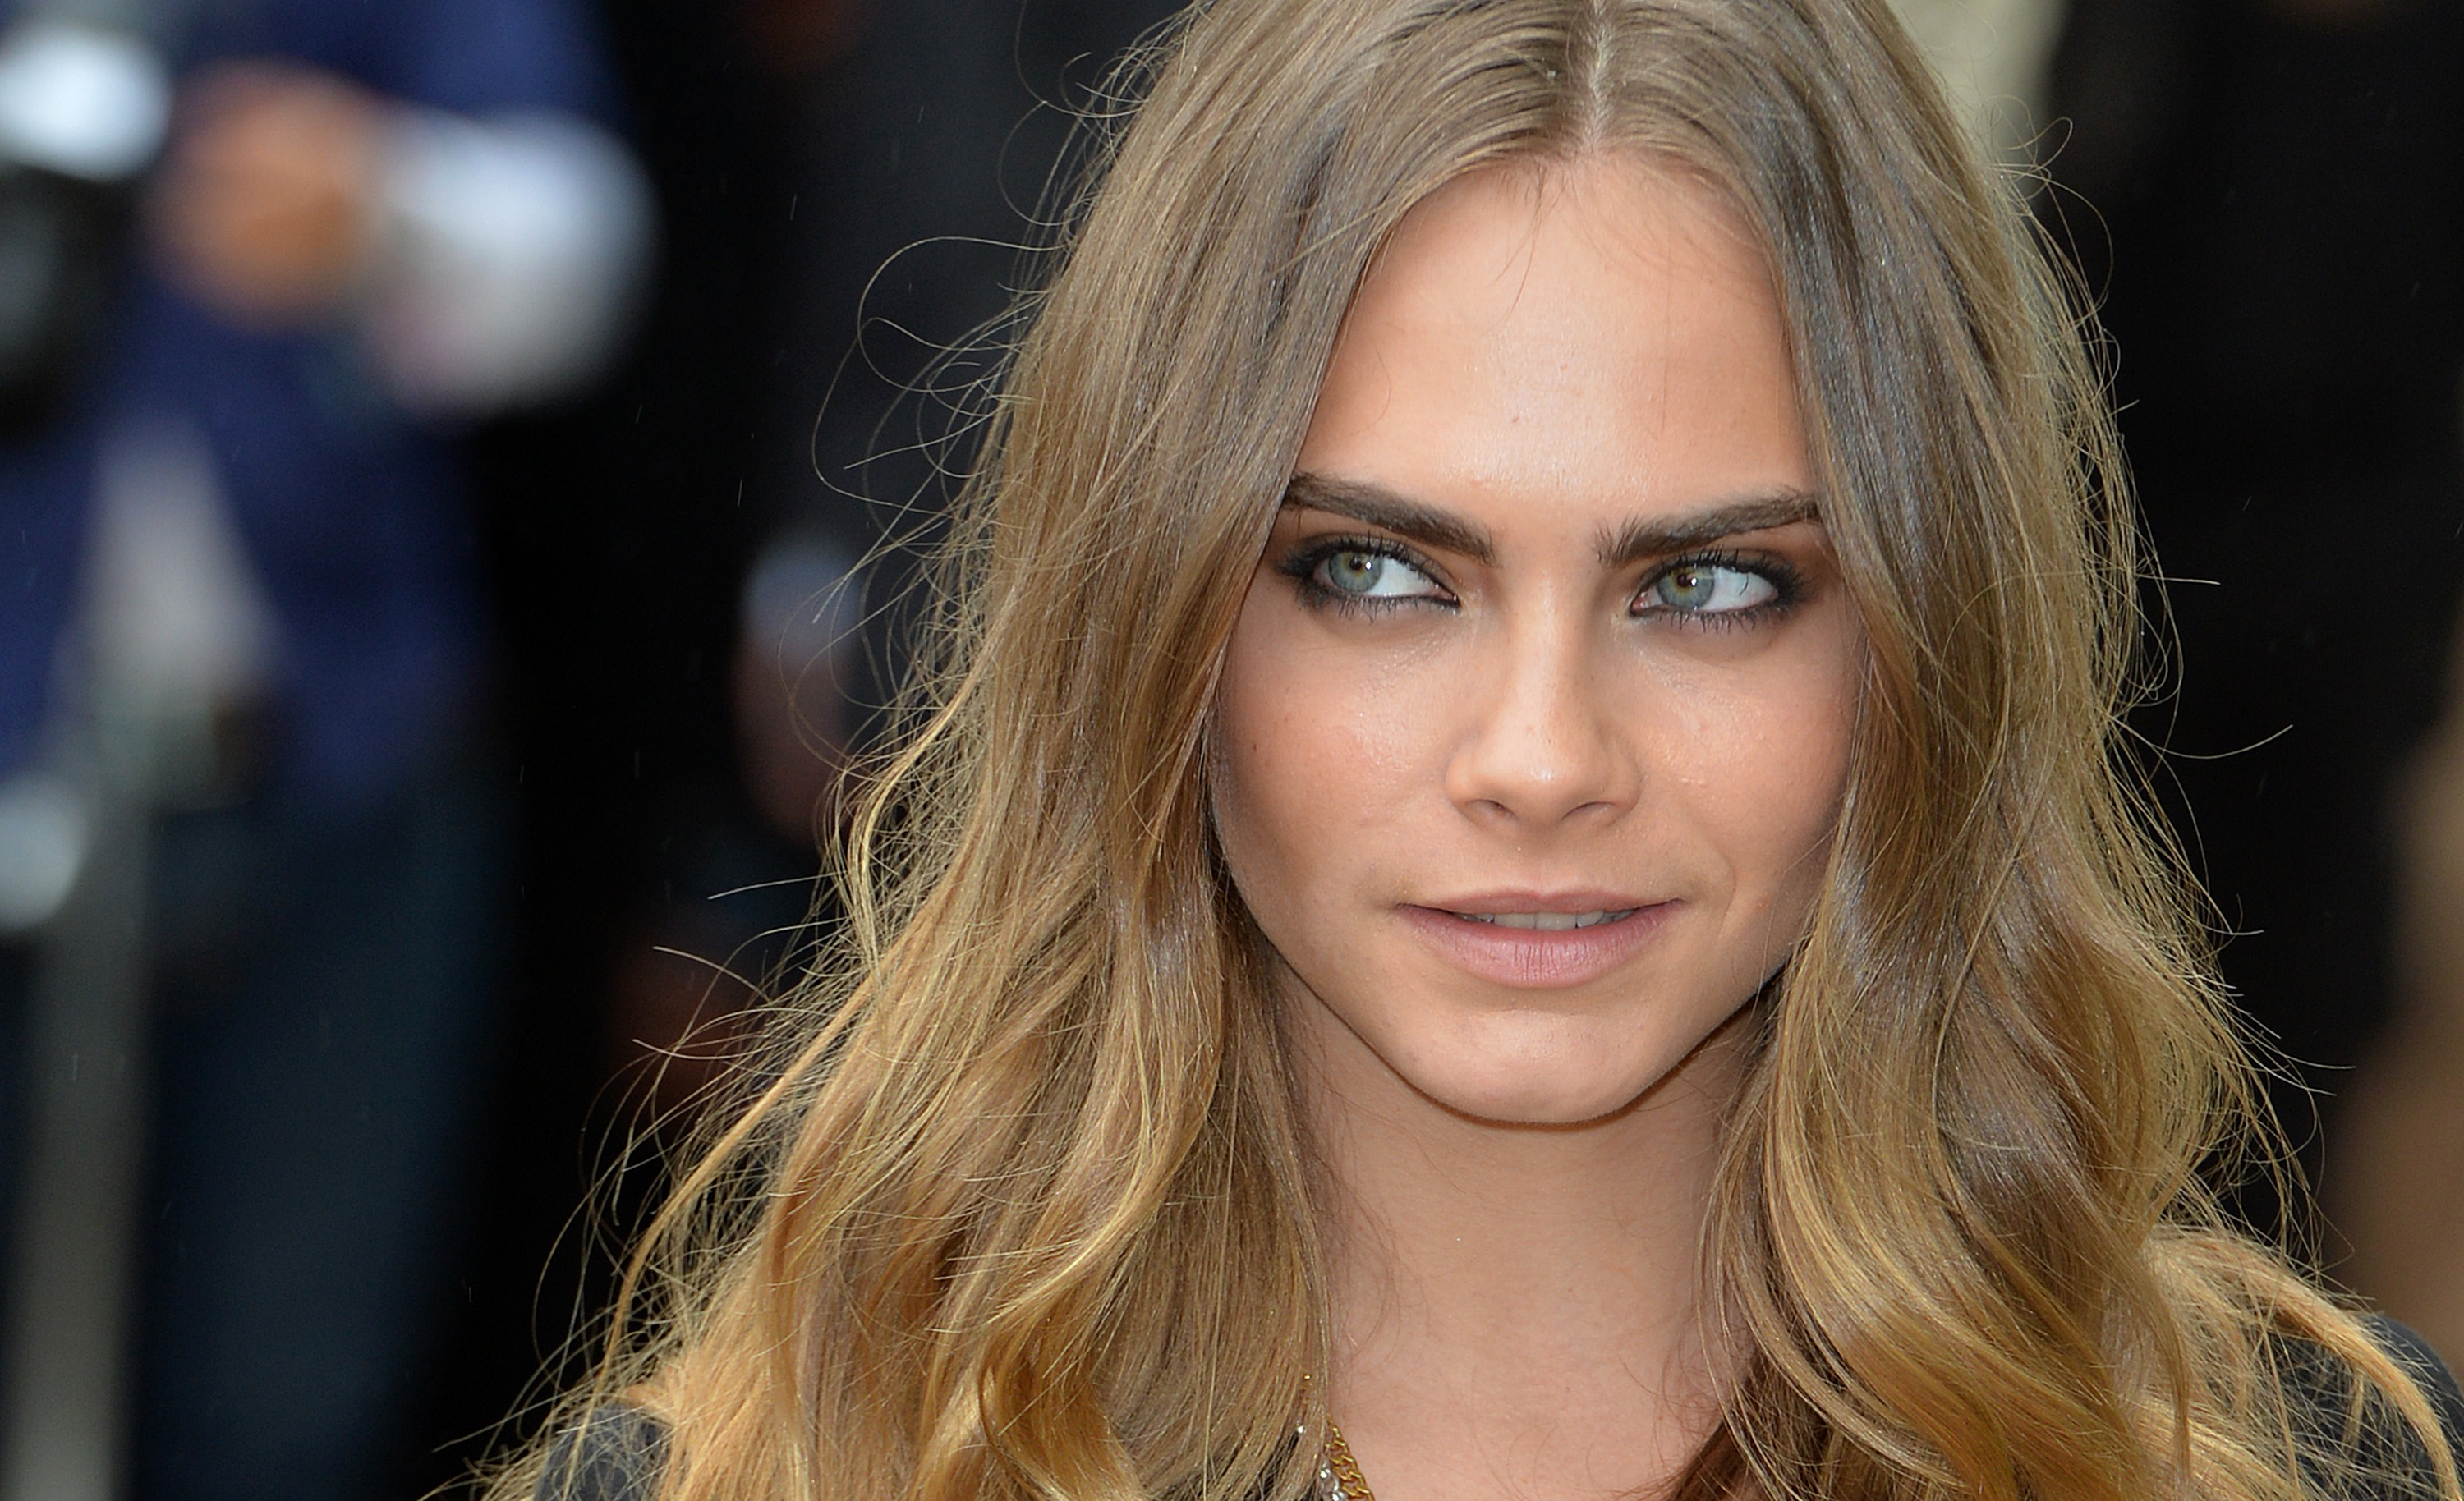 Cara Delevingne's reason for revealing her depression is absolutely perfect and so important